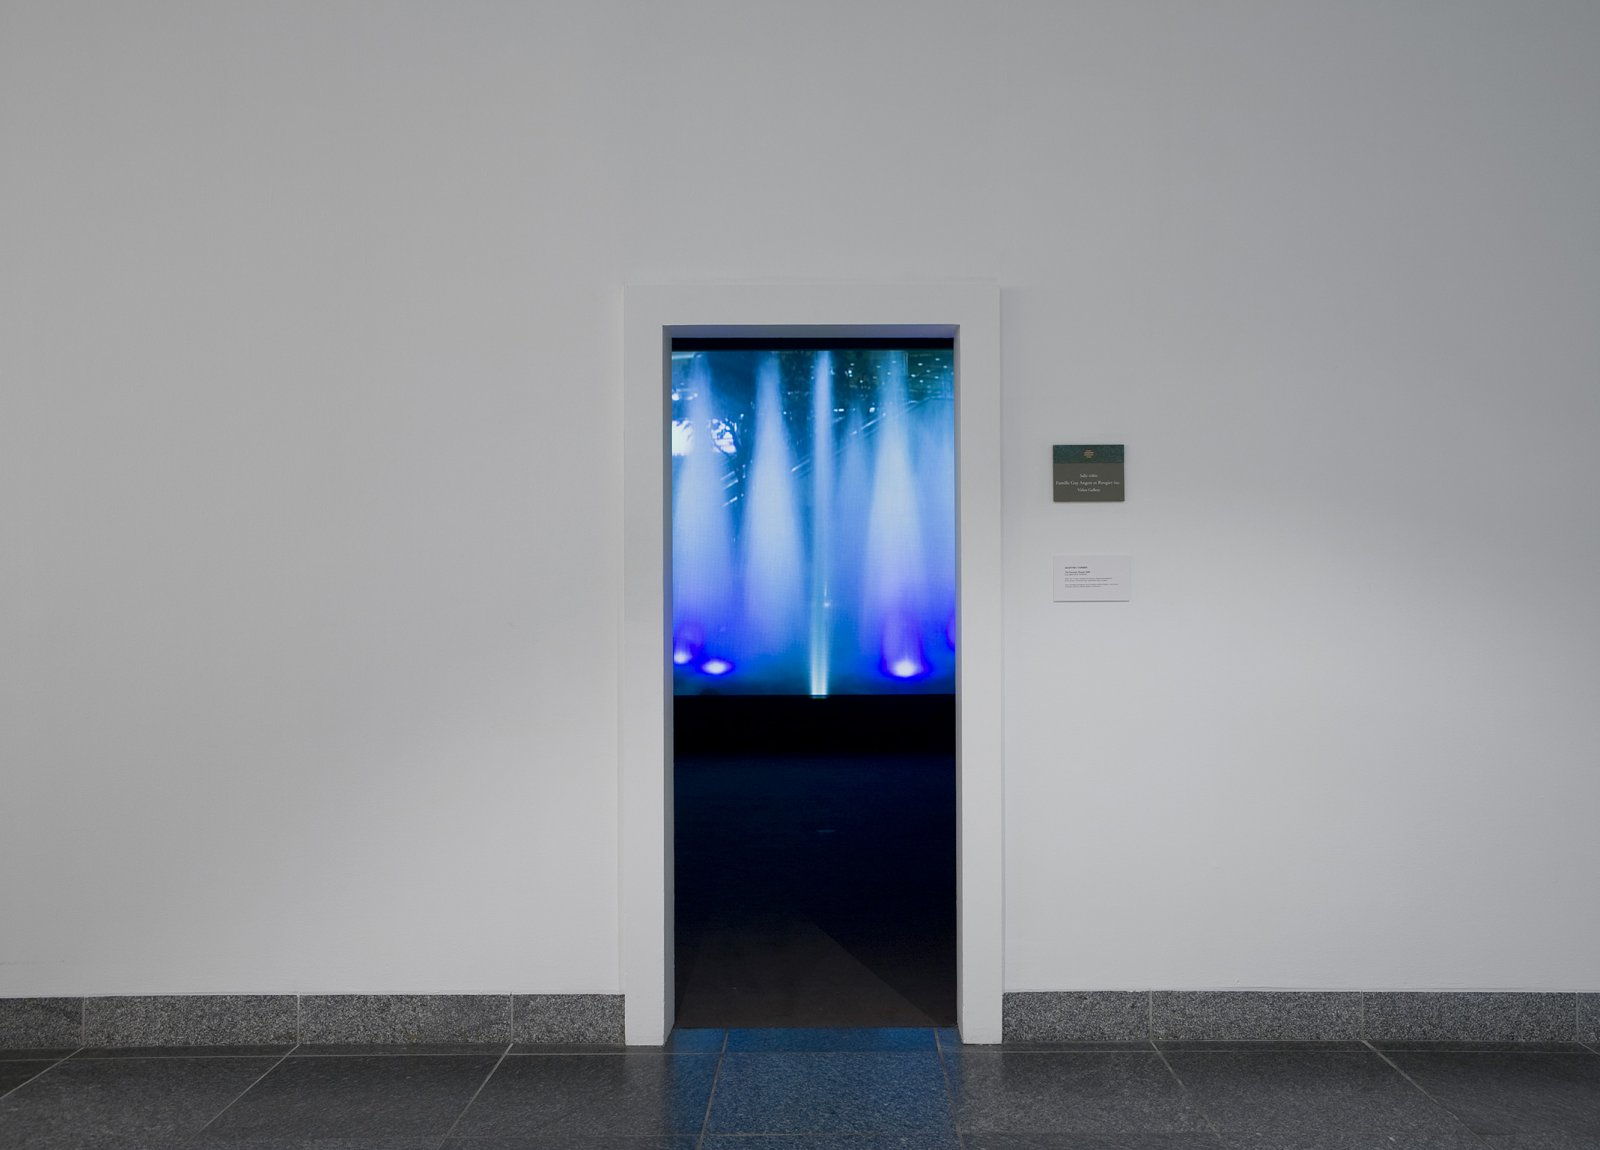 Geoffrey Farmer, The Fountain People, 2008, video projection, 10 minutes looped, handwritten text on paper, dimensions variable by Geoffrey Farmer